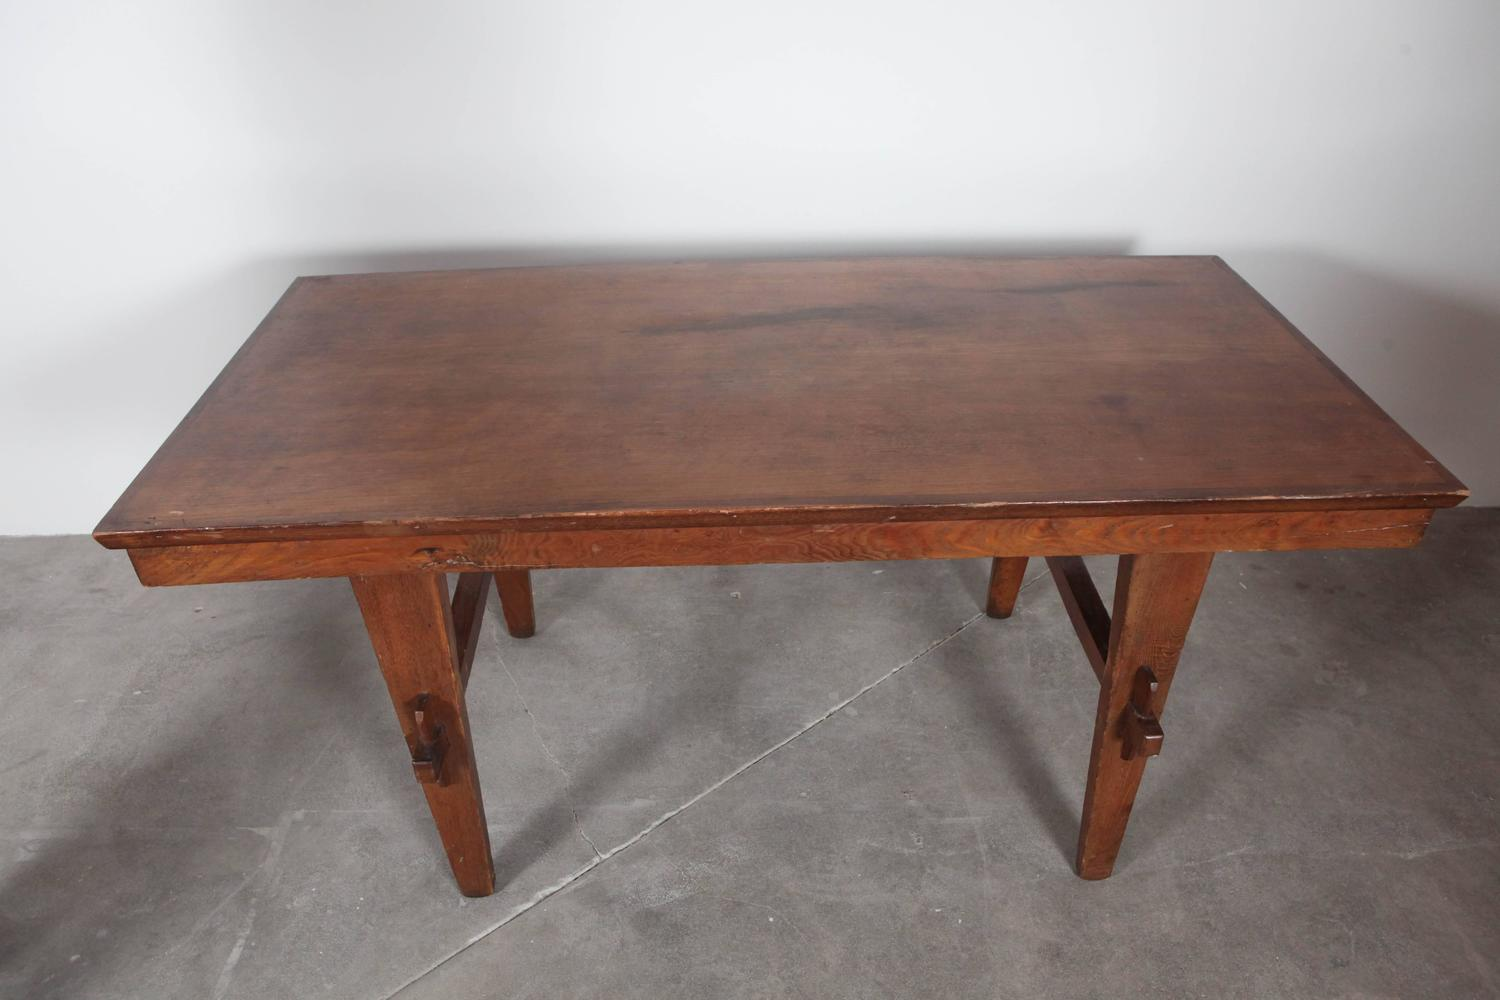 Italian Dining Table With Peg Hold Legs For Sale At 1stdibs